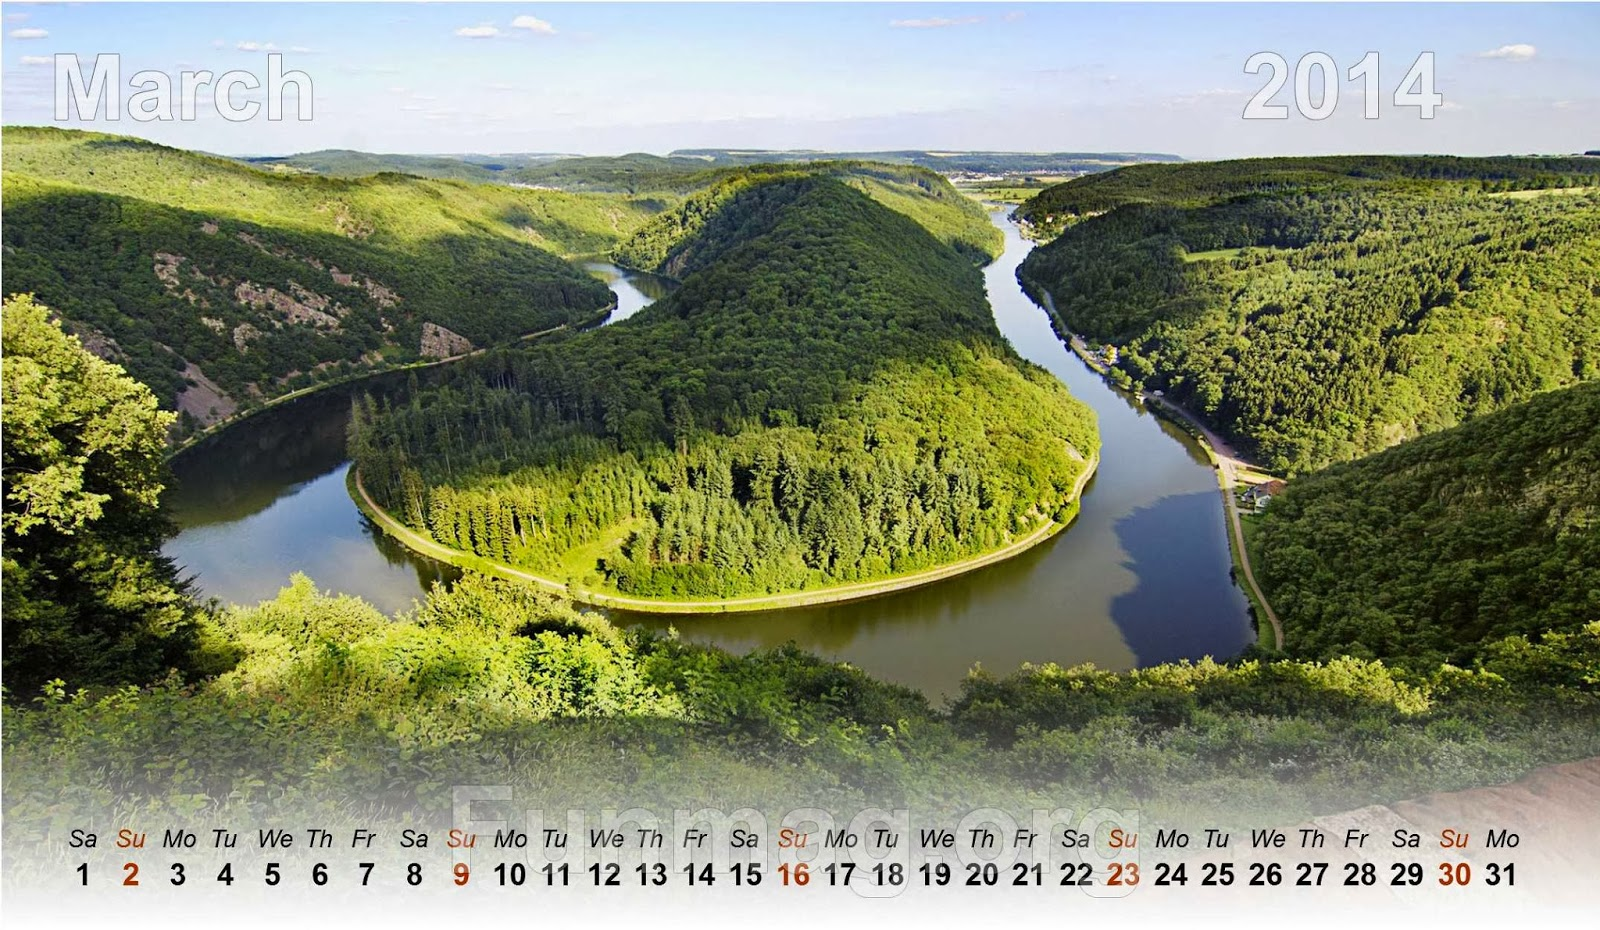 http://www.funmag.org/pictures-mag/calendar/nature-calendar-2014/